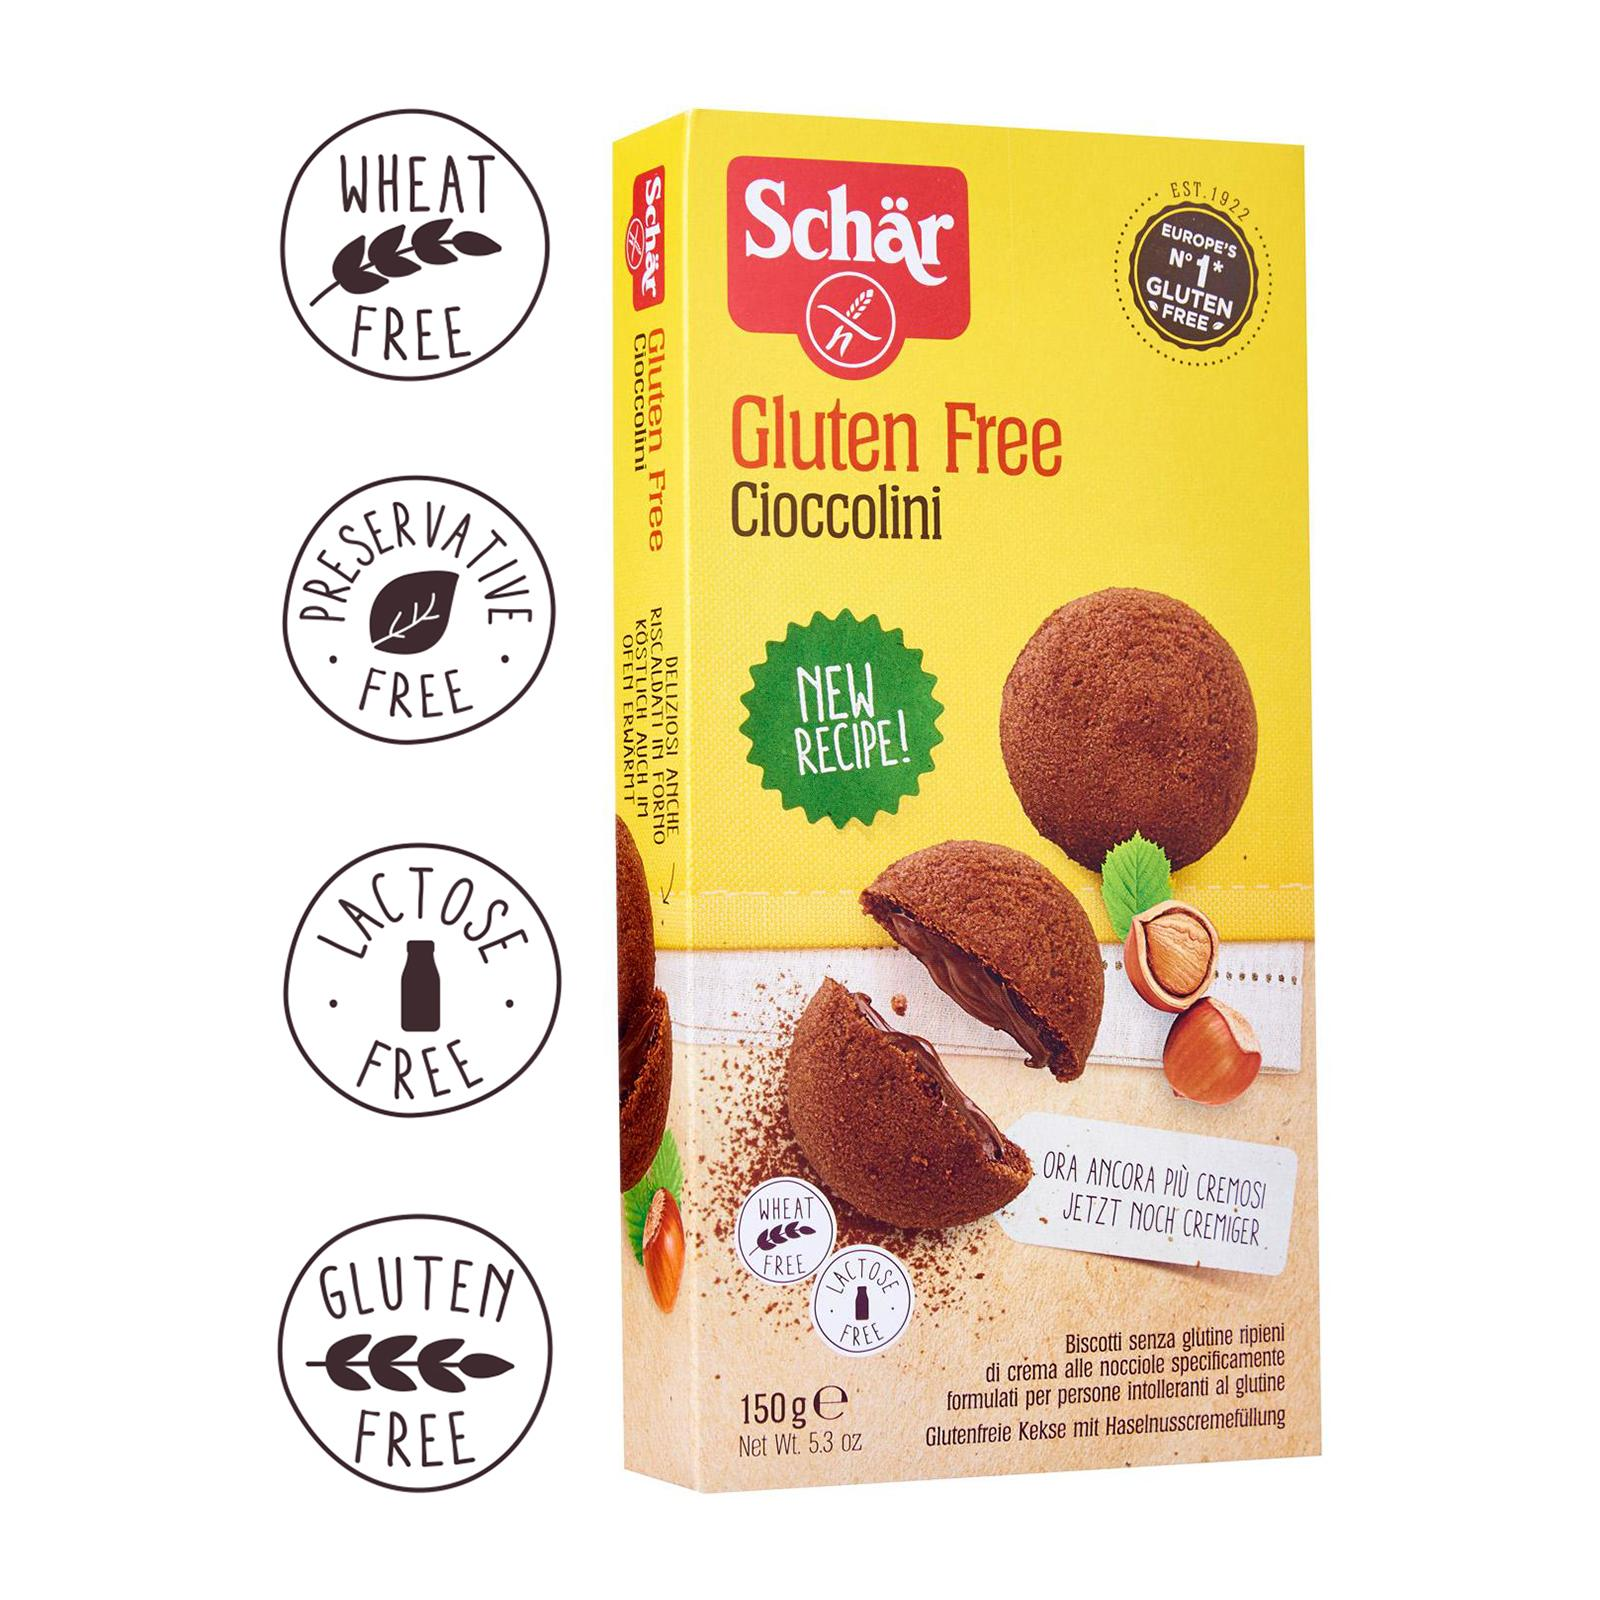 Dr. Schar Cioccolini Crumbly Shortbread Cookies with light Hazelnut Cream Filling - Gluten Free by Agora Products